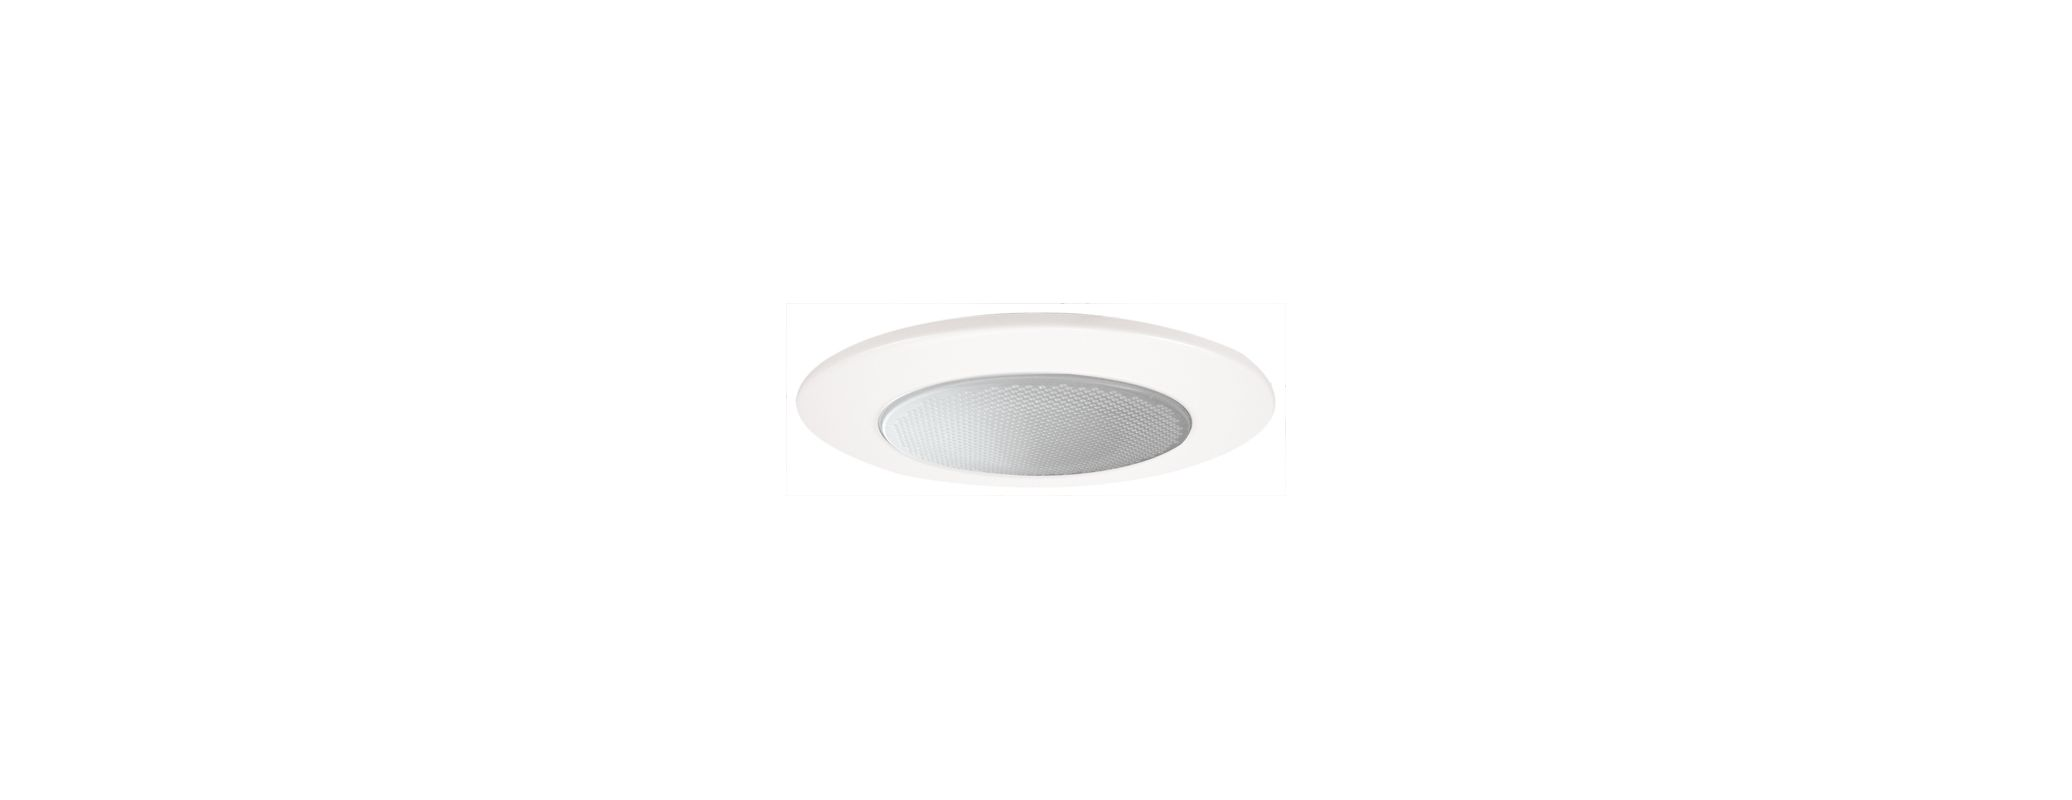 "Elco EL5112W 5"" Shower Trim with Albalite Lens and Reflector White"